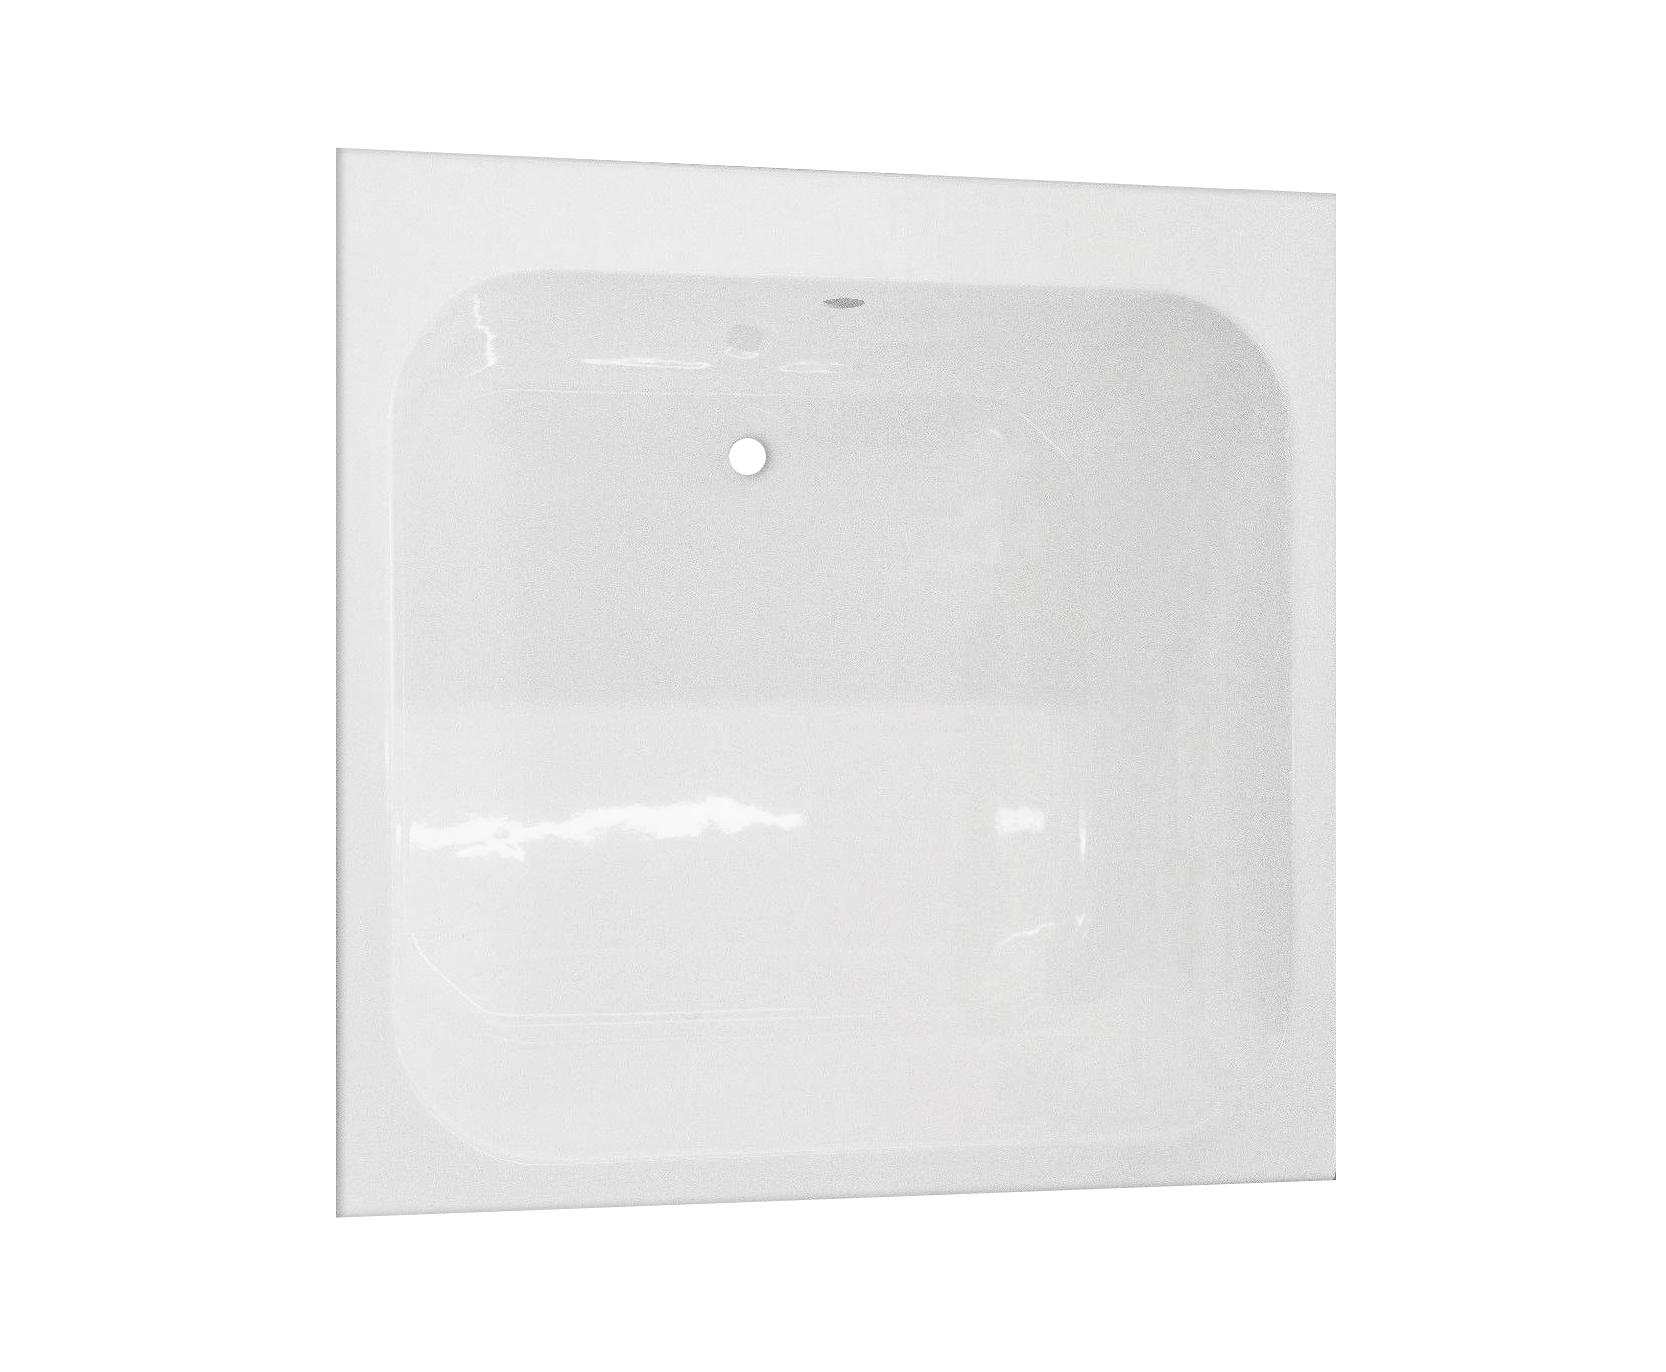 Oriental Deep Soaking Tub 1100 x 1100 mm